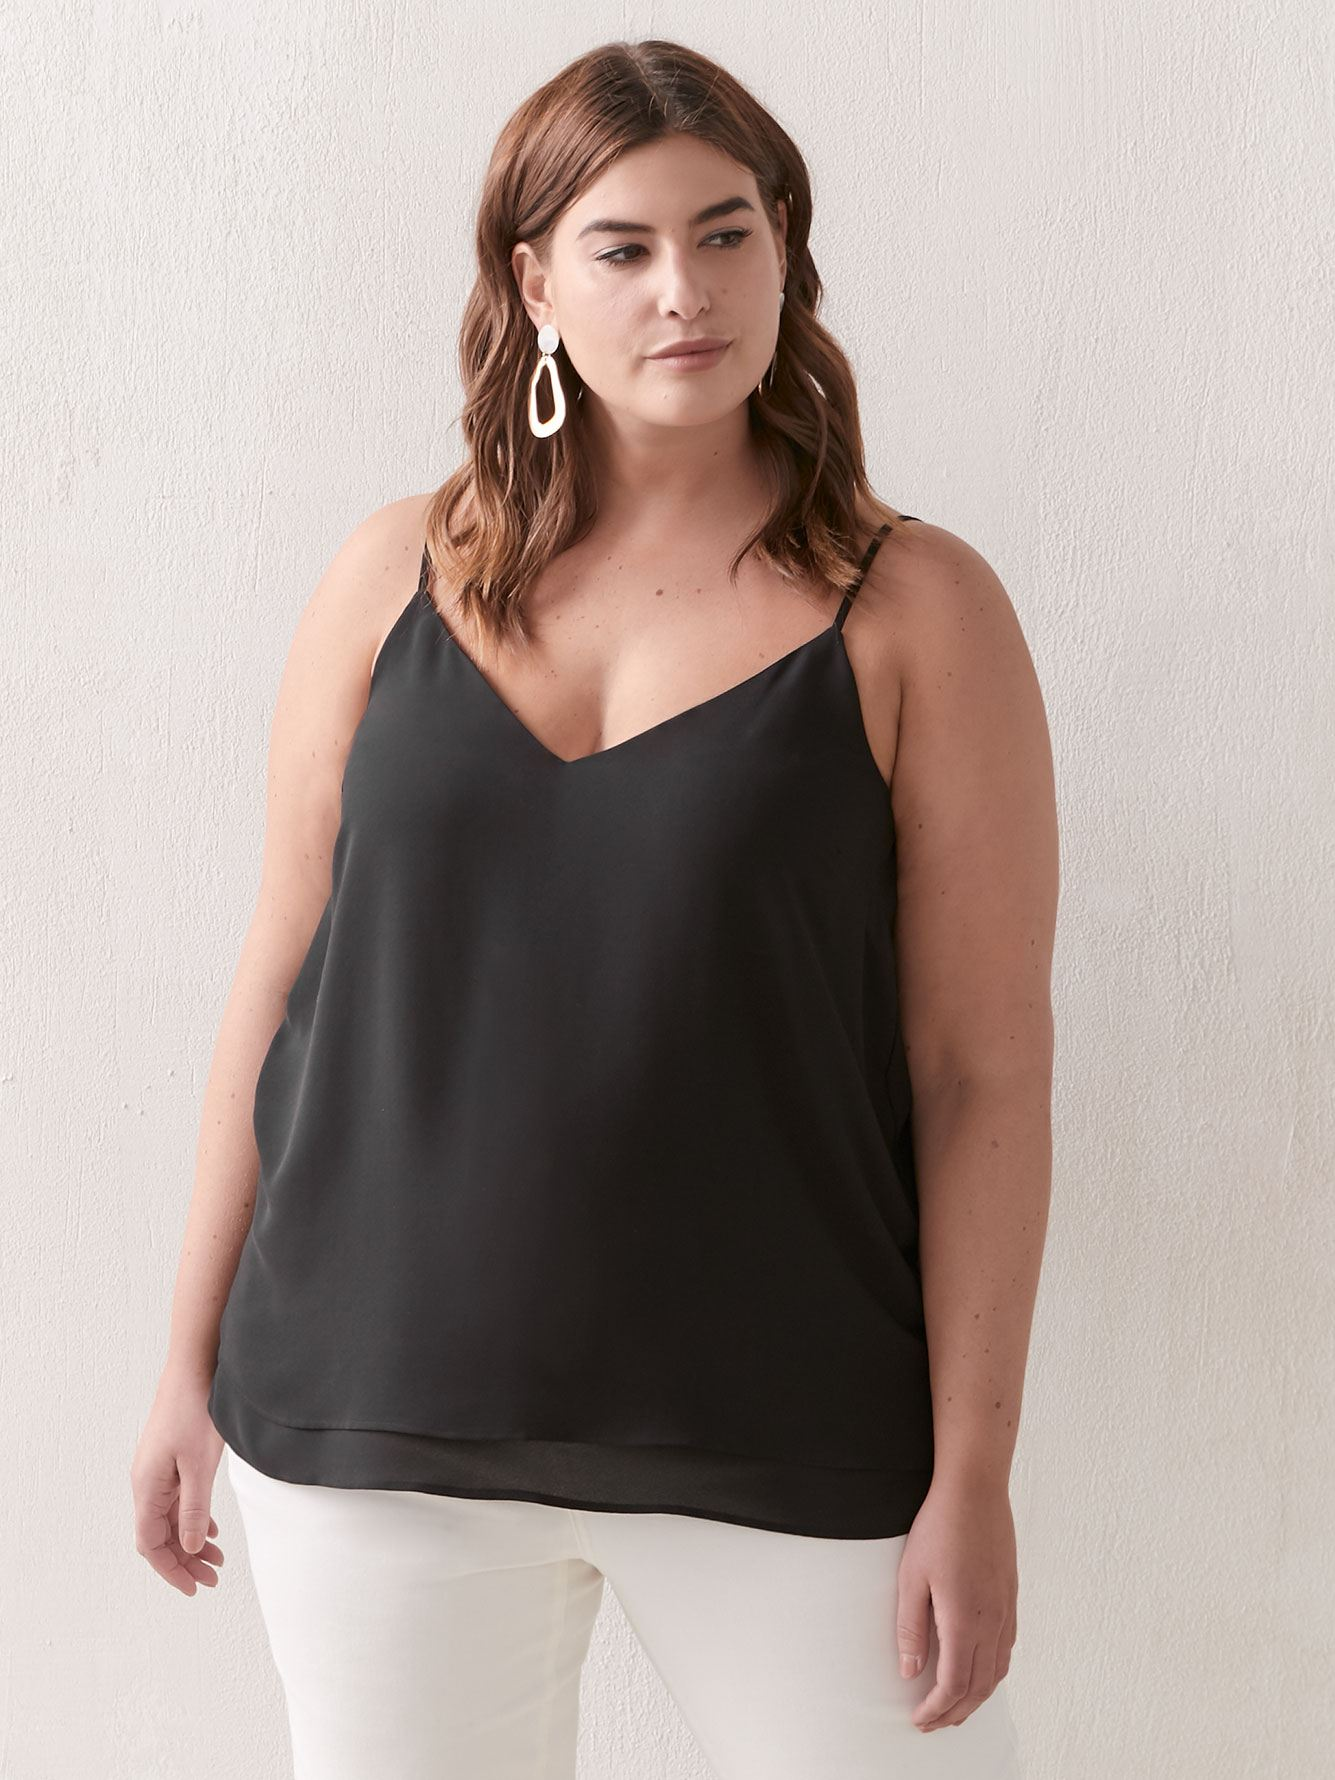 Silky Black Cami with Adjustable Straps - Addition Elle